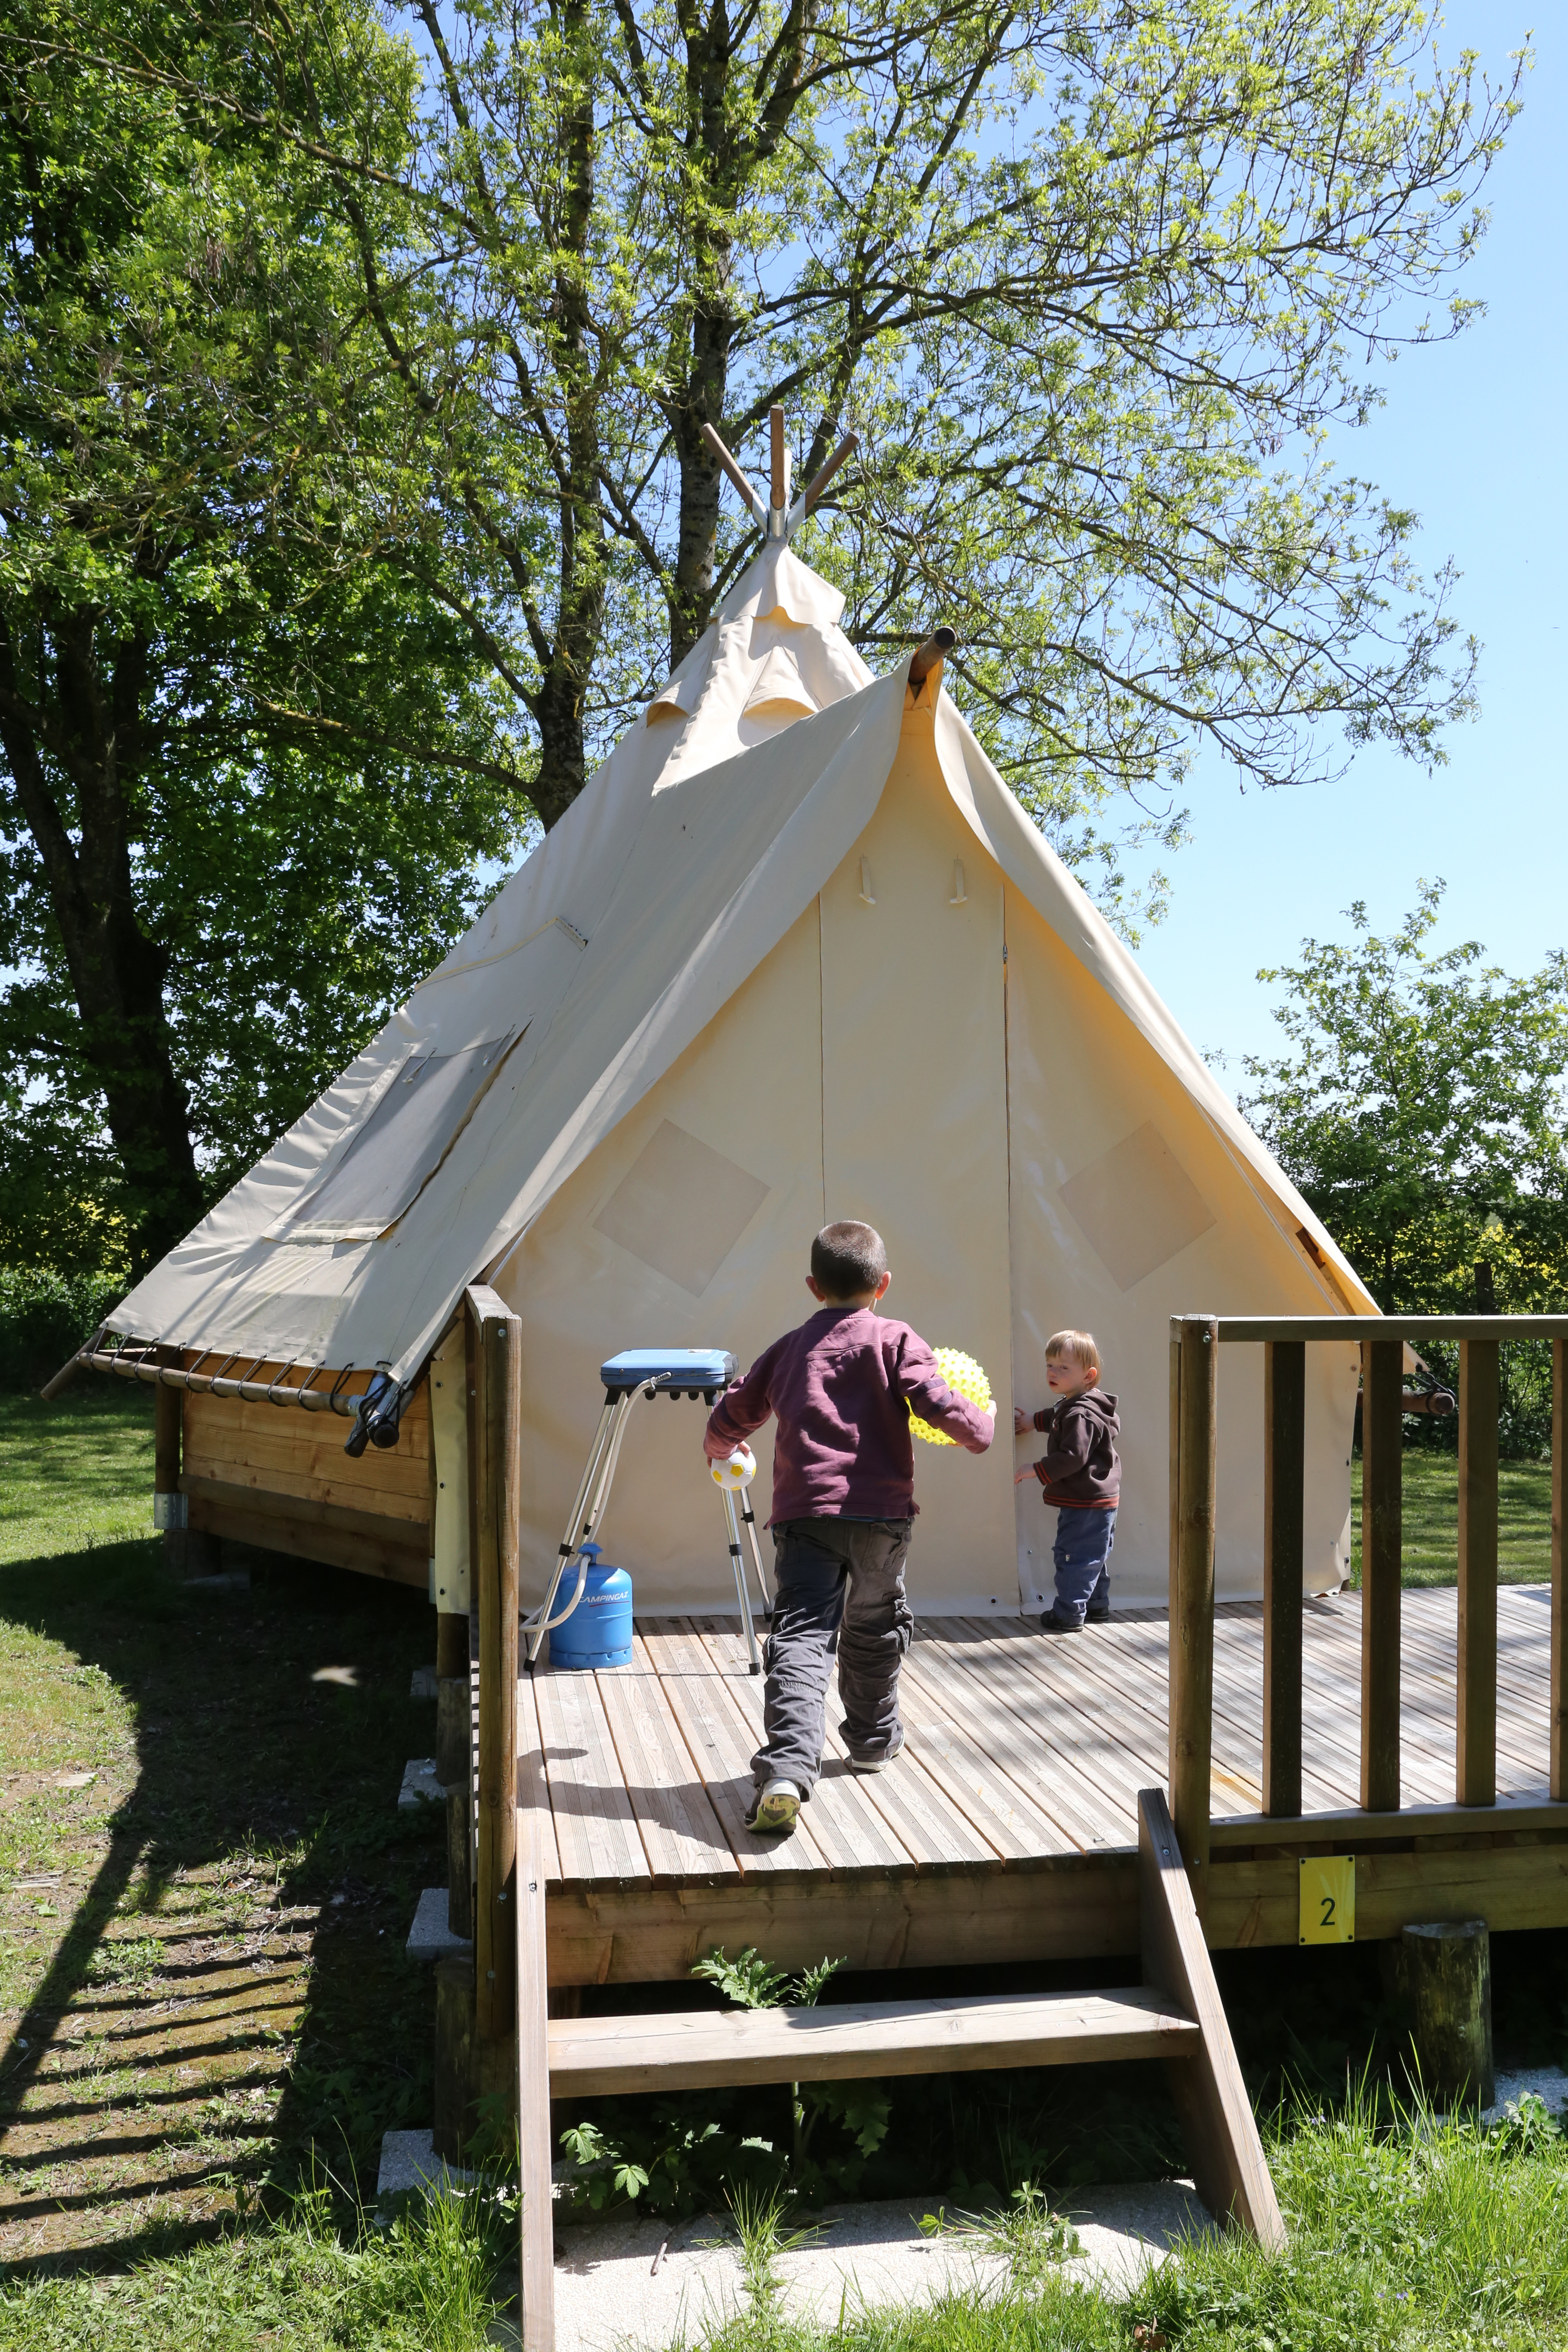 Tipi PDO Camping Nid Du Parc Fin Avril 2017 Y. THONNERIEUX (34)